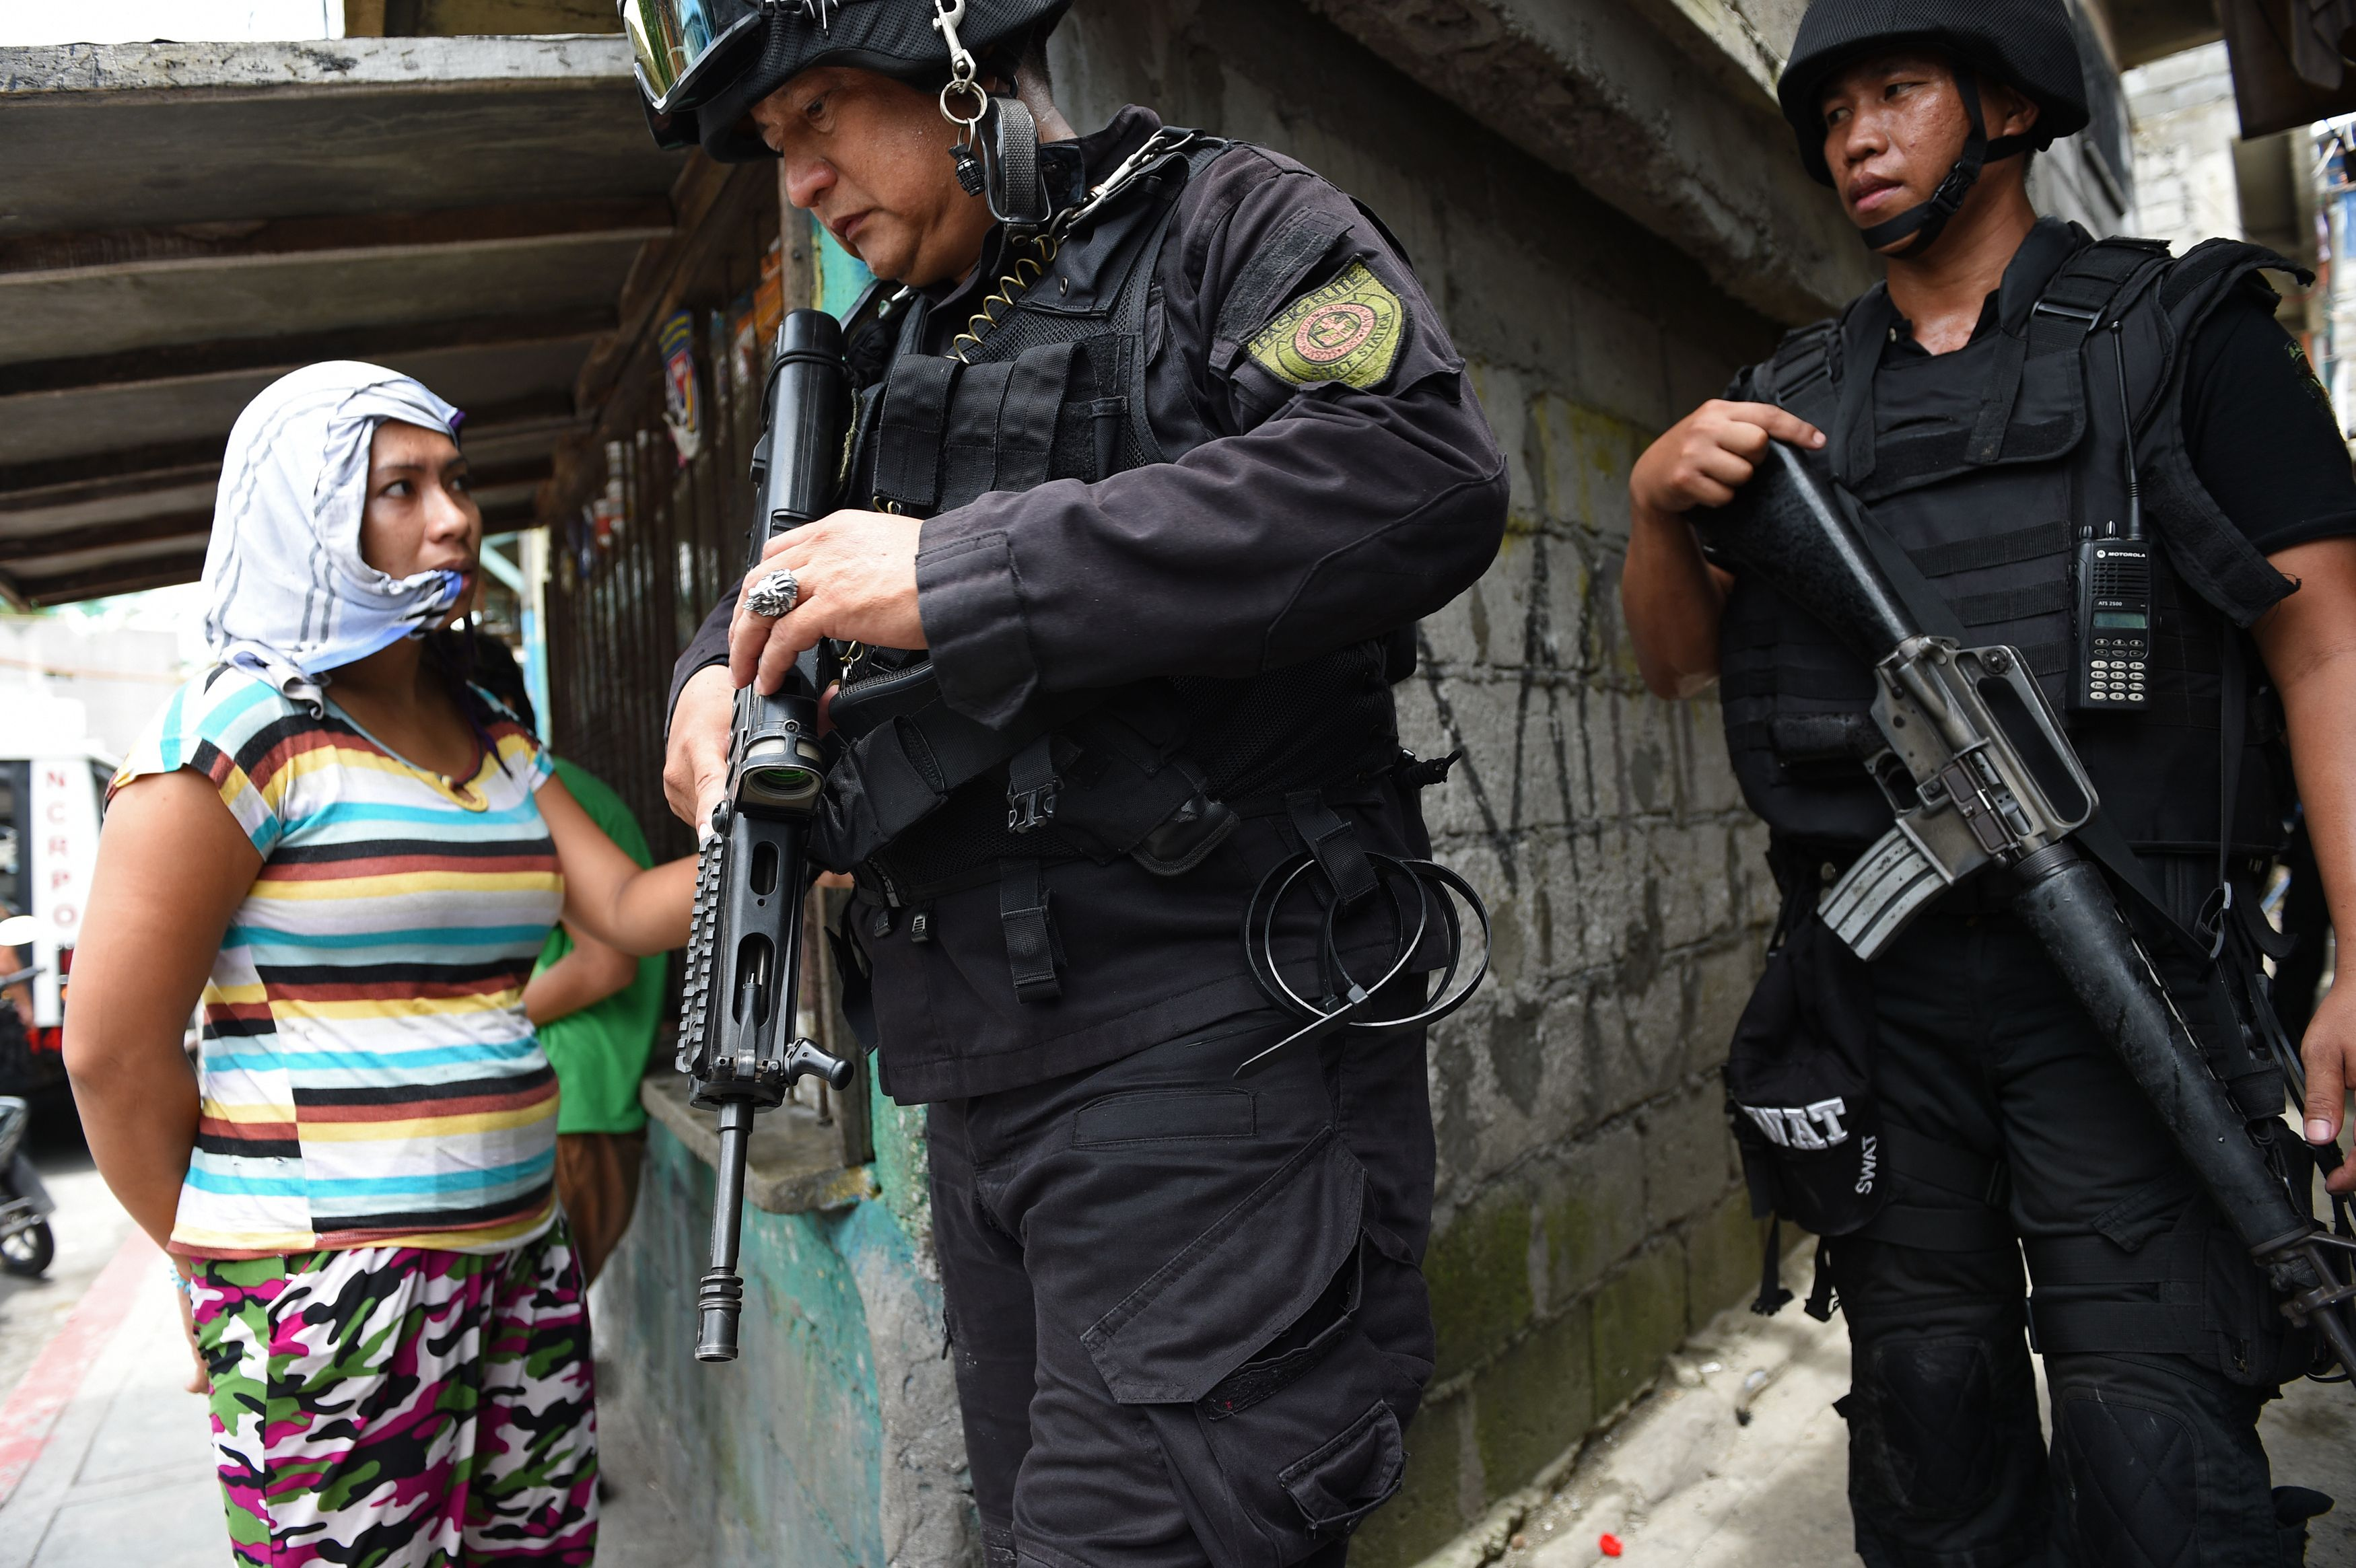 Police Special Weapons And Tactics (SWAT) personnel walk past a resident after an operation against illegal drugs in Pasig City, suburban Manila on September 5, 2016.